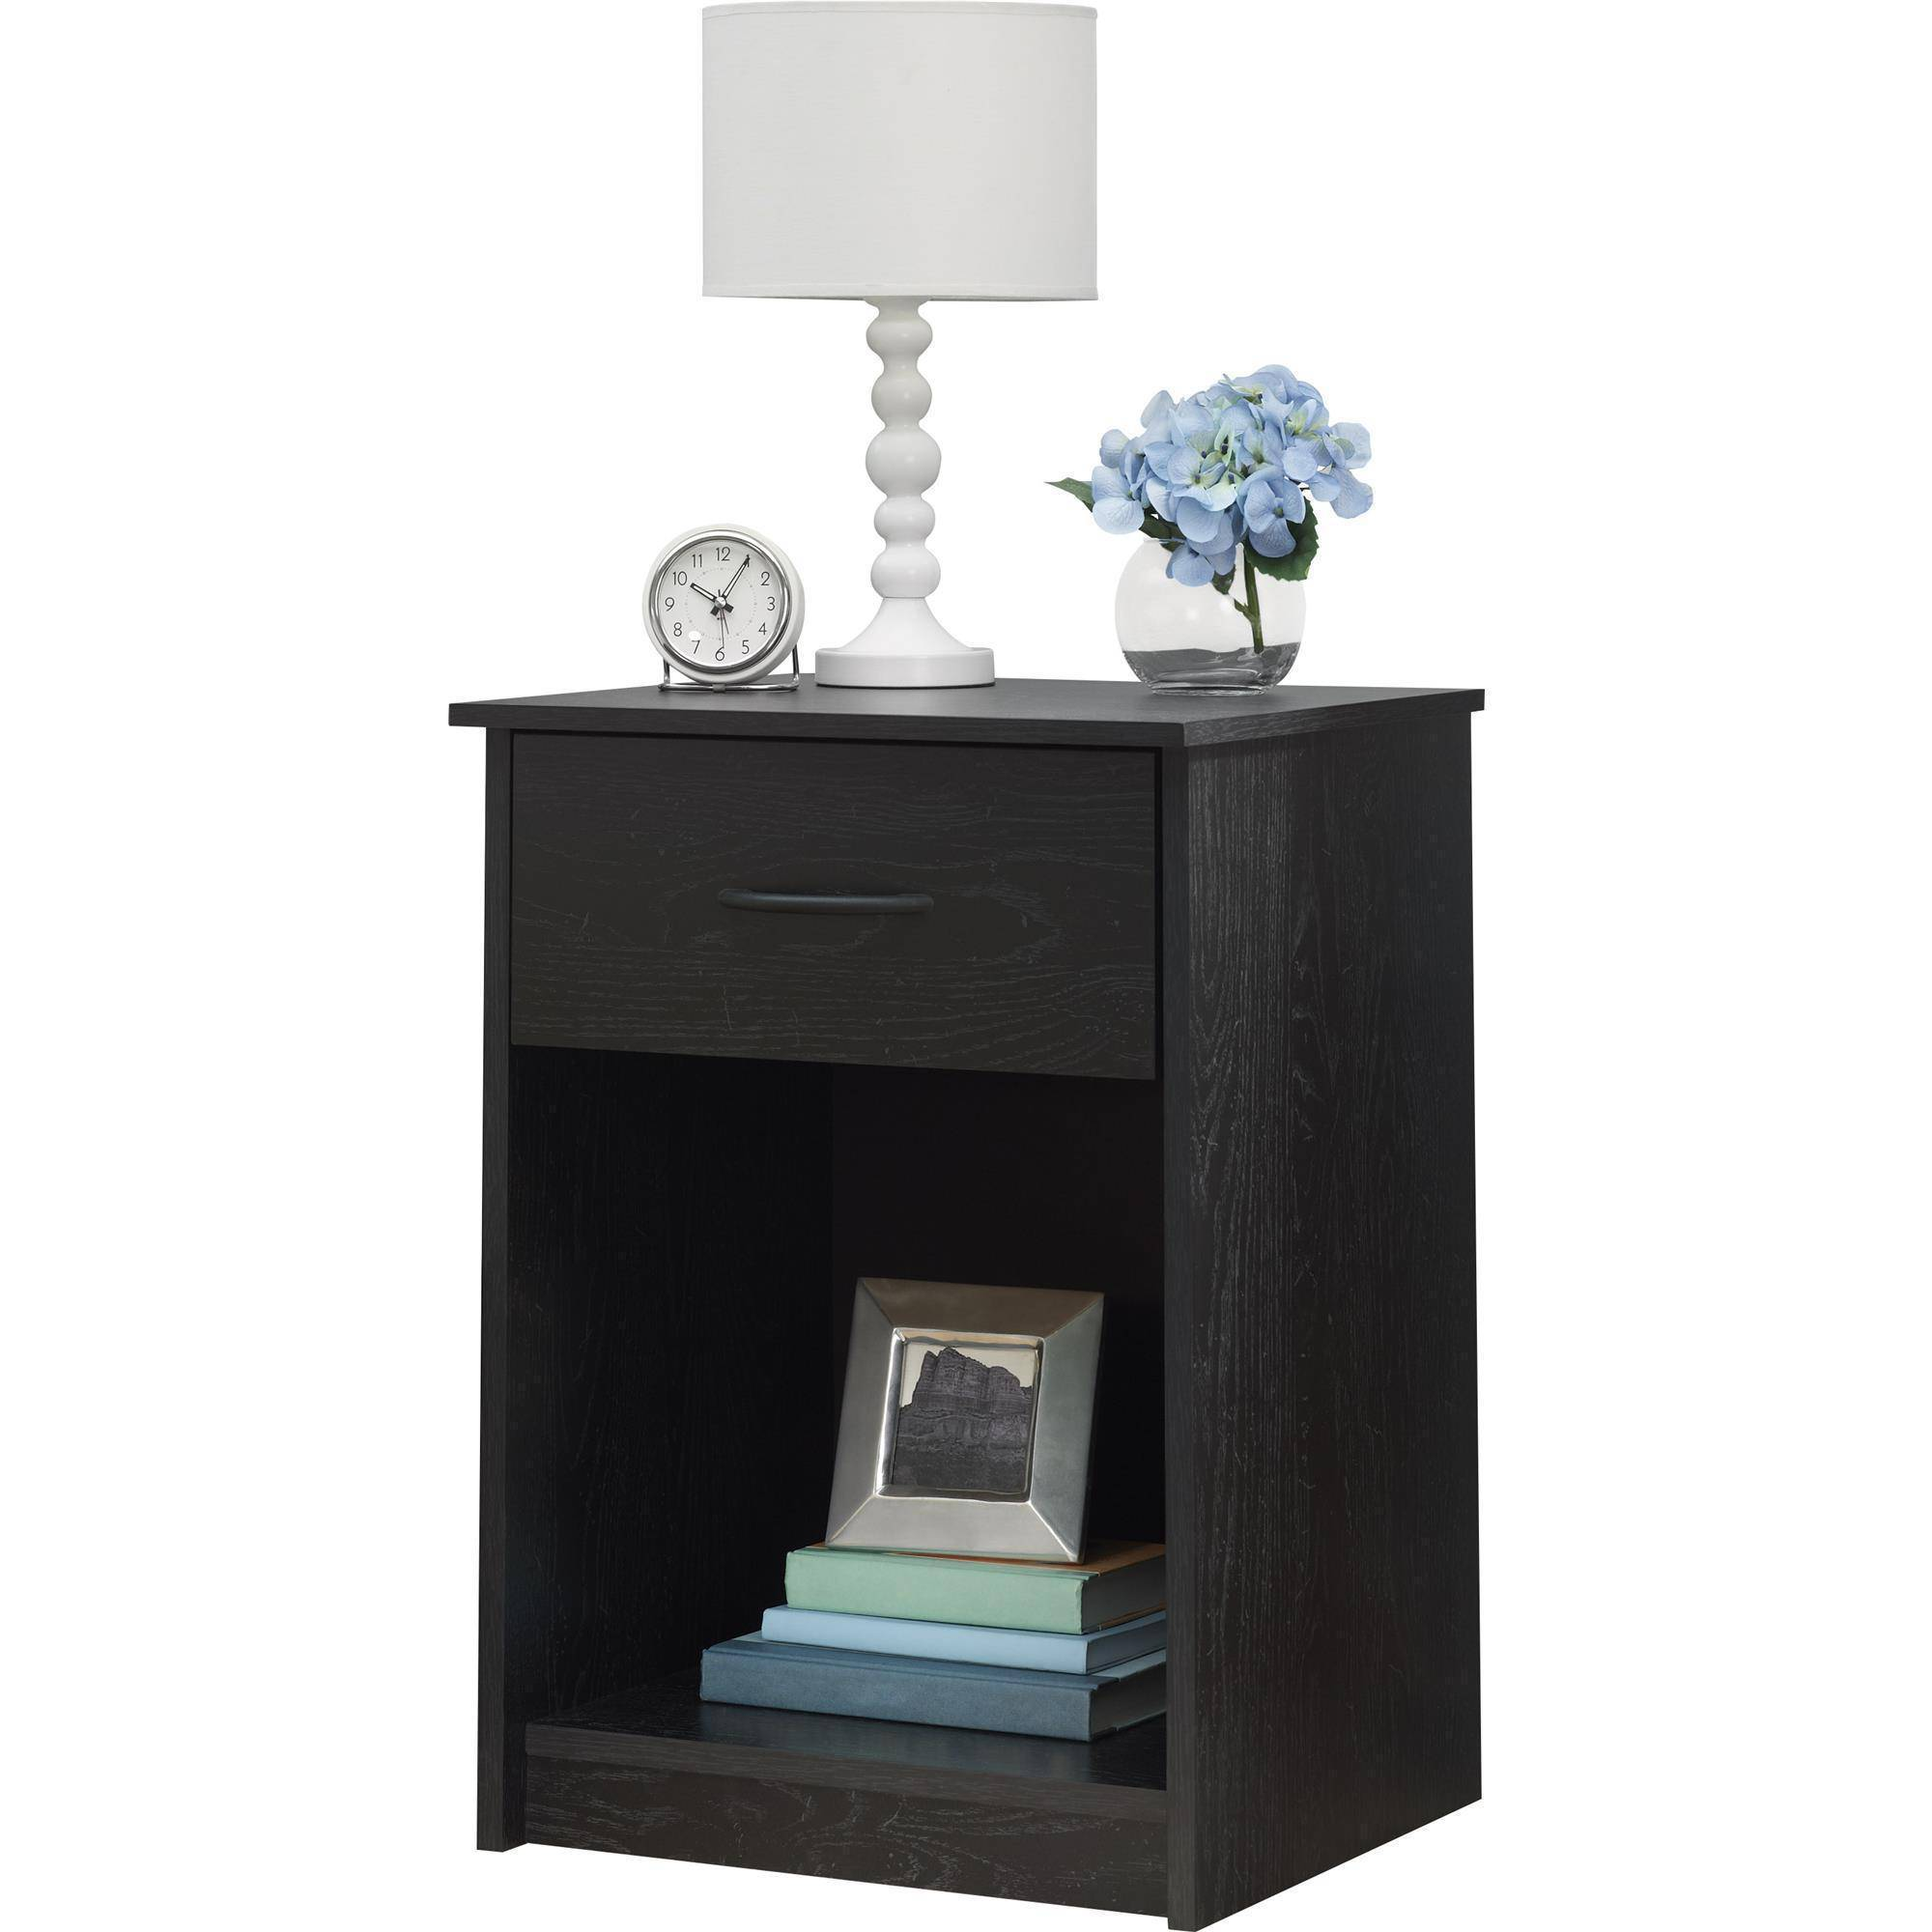 mainstays drawer nightstand end table black ebony ash elegant round glass top dining when does big lots close home furniture melbourne pulaski san mateo miami dolphins gaming